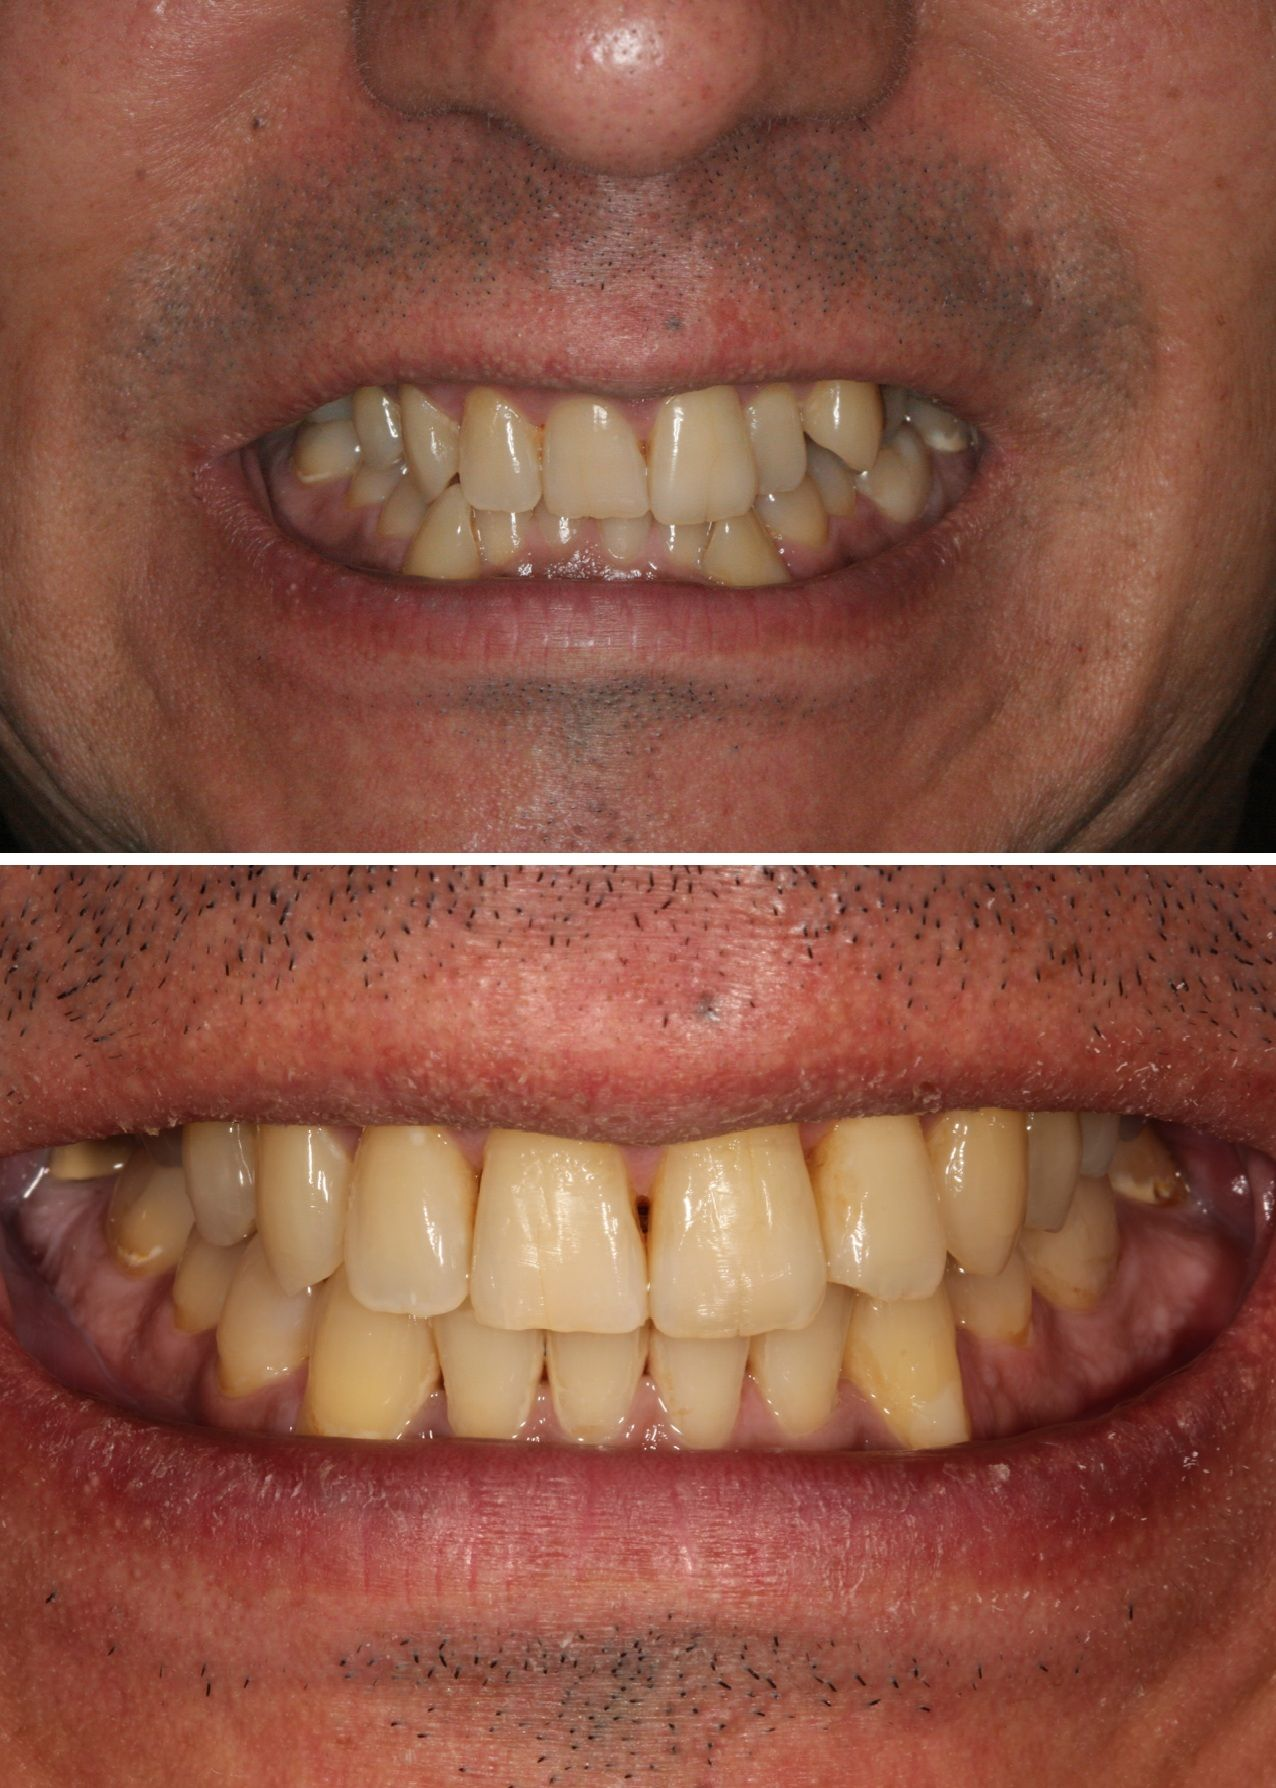 Befor and Agter photos of David's teeth. StraightTeeth